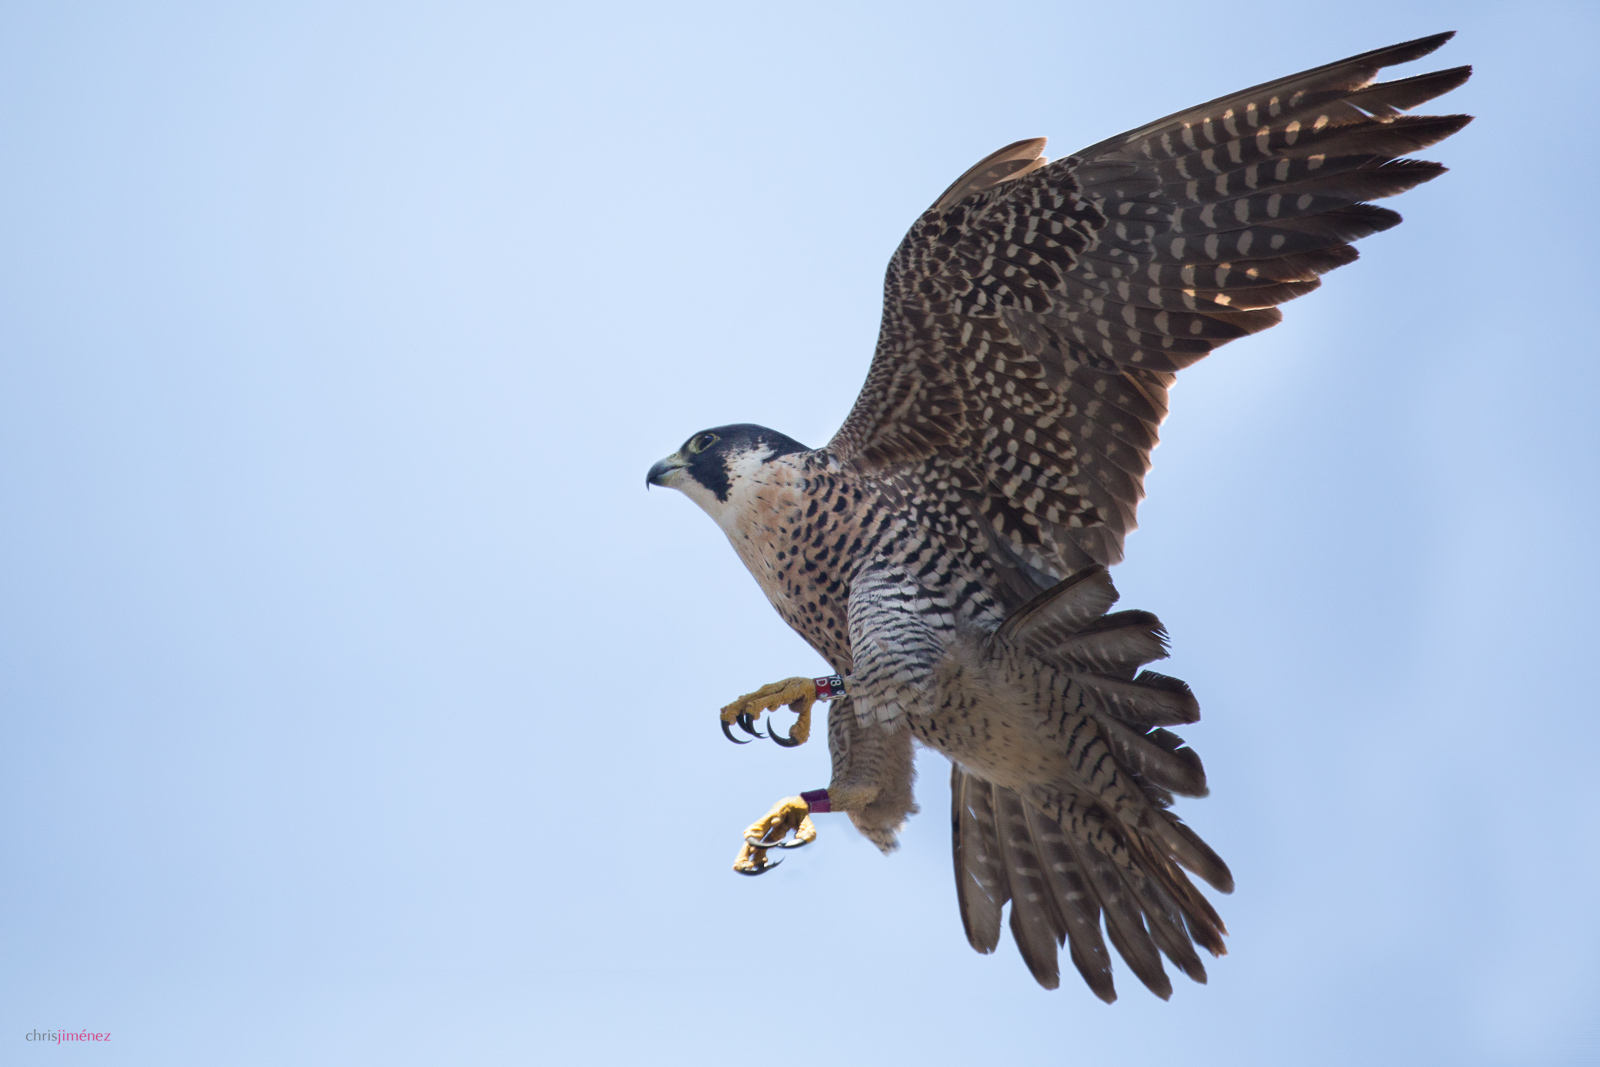 Peregrine Falcon (Falco peregrinus) at flight in Heredia, Costa Rica(Notice the banding on the legs)